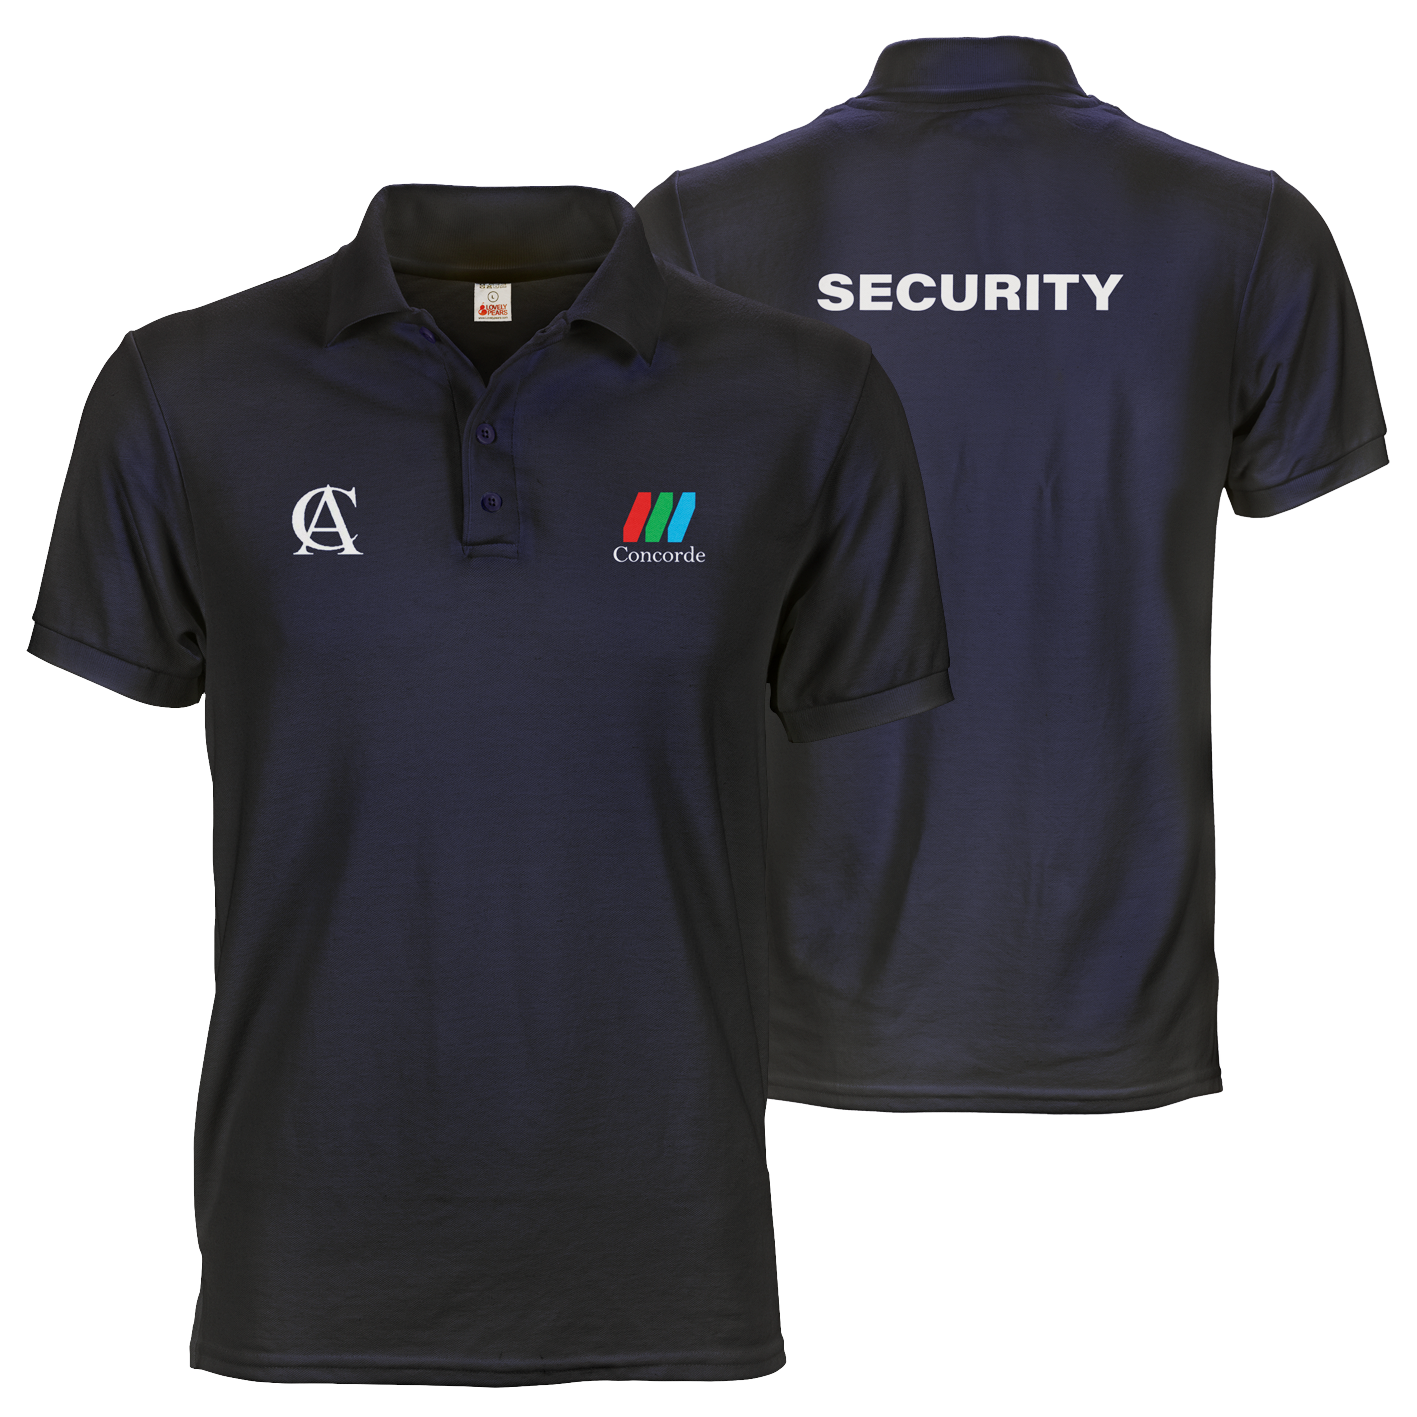 Navy blue CCTV polo tee shirt with A6 logo prints on front and A4 security print on back